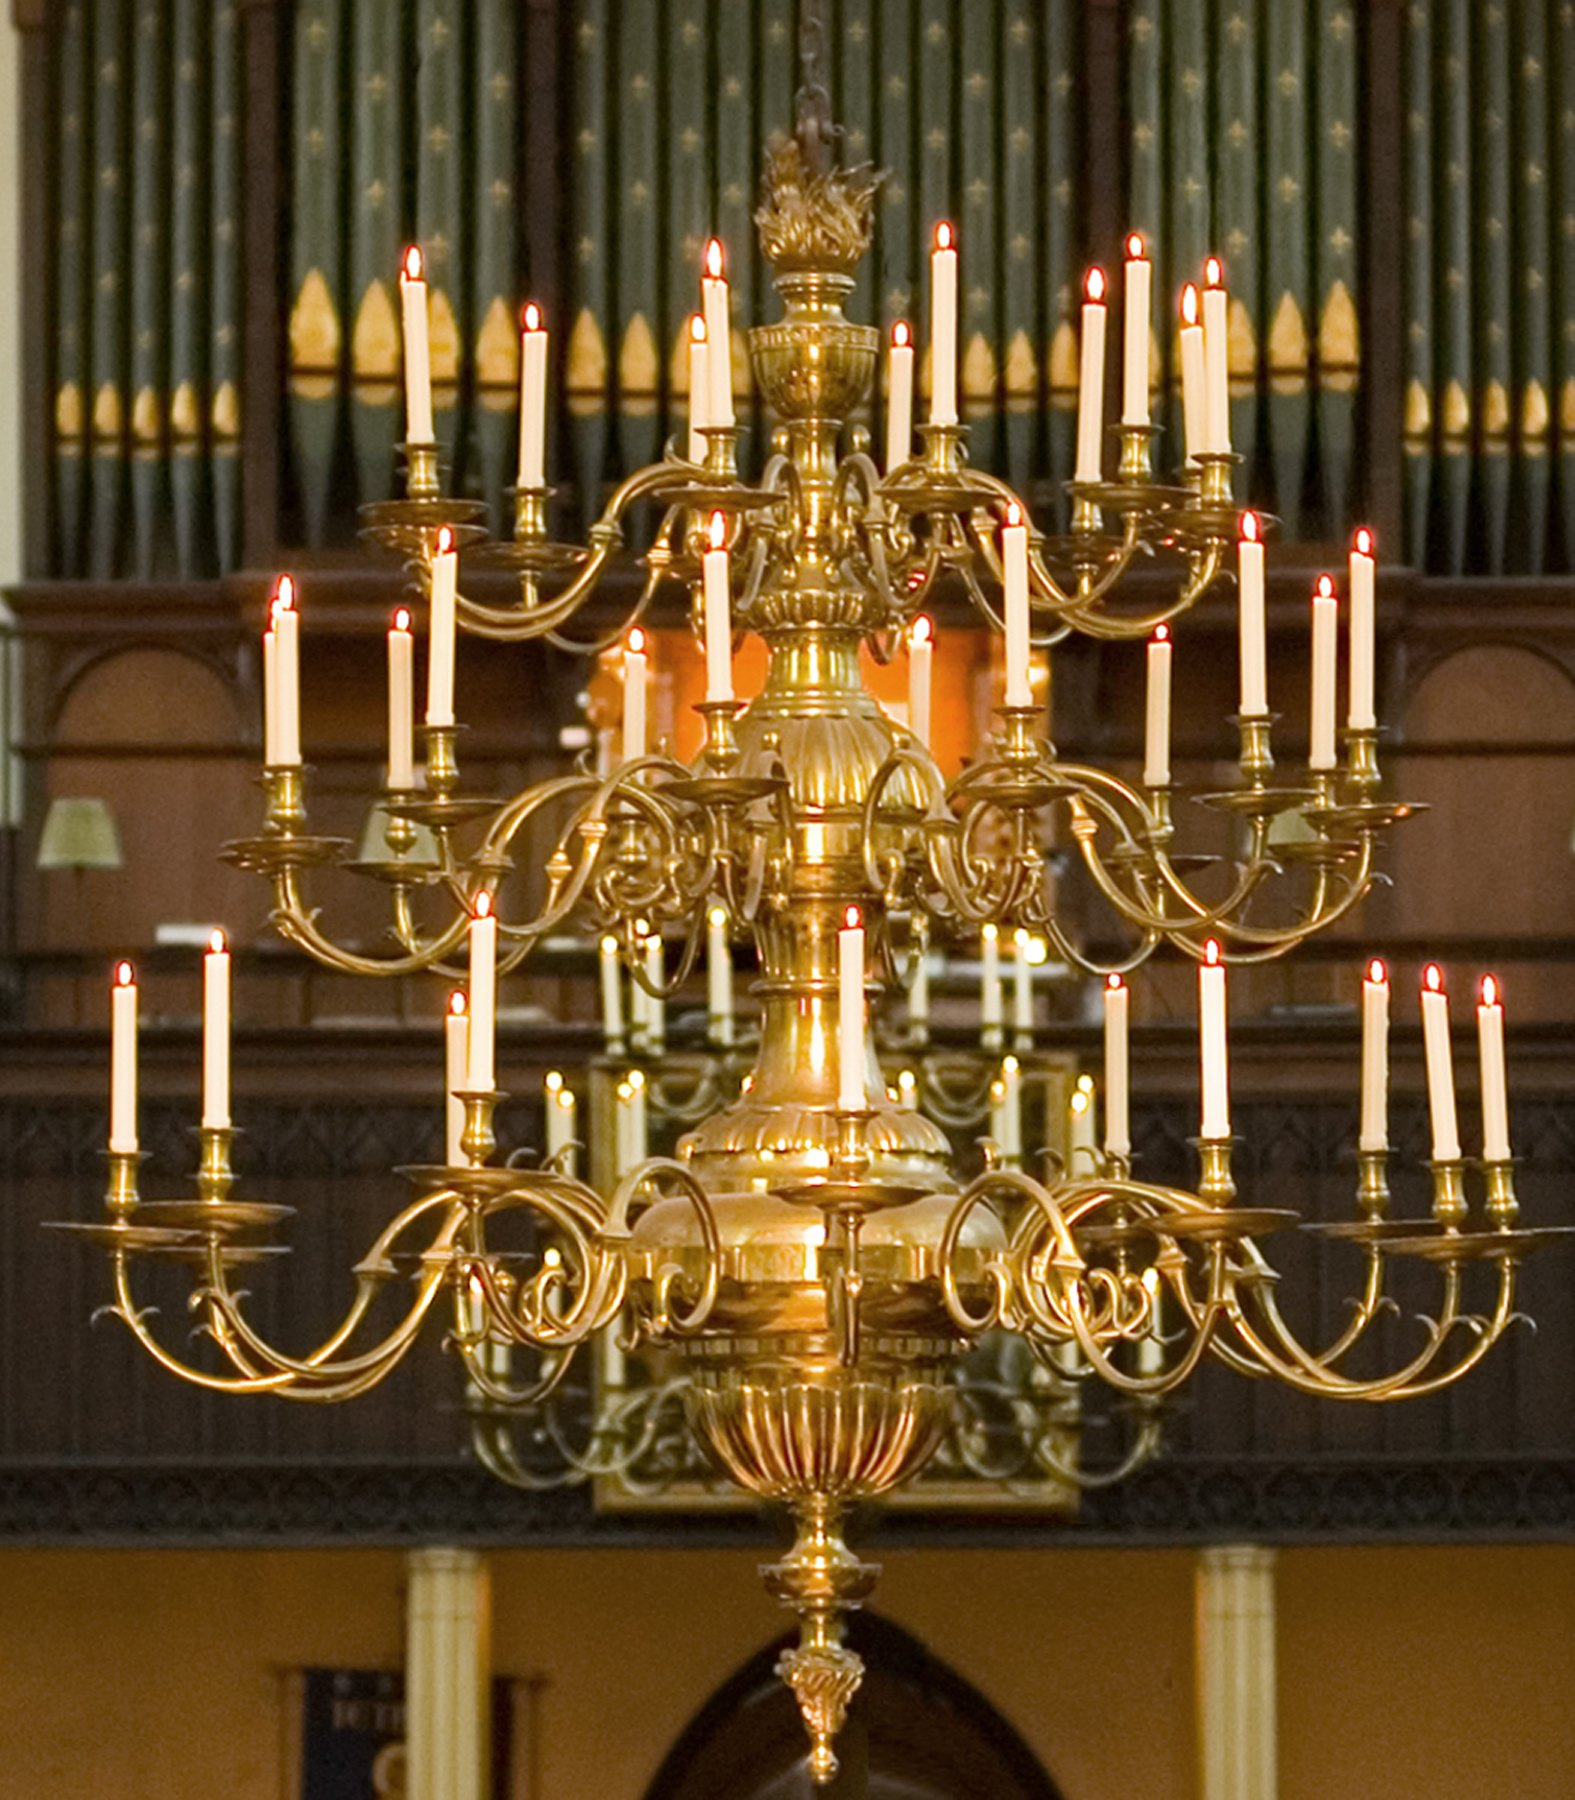 Chandalier above the Nave